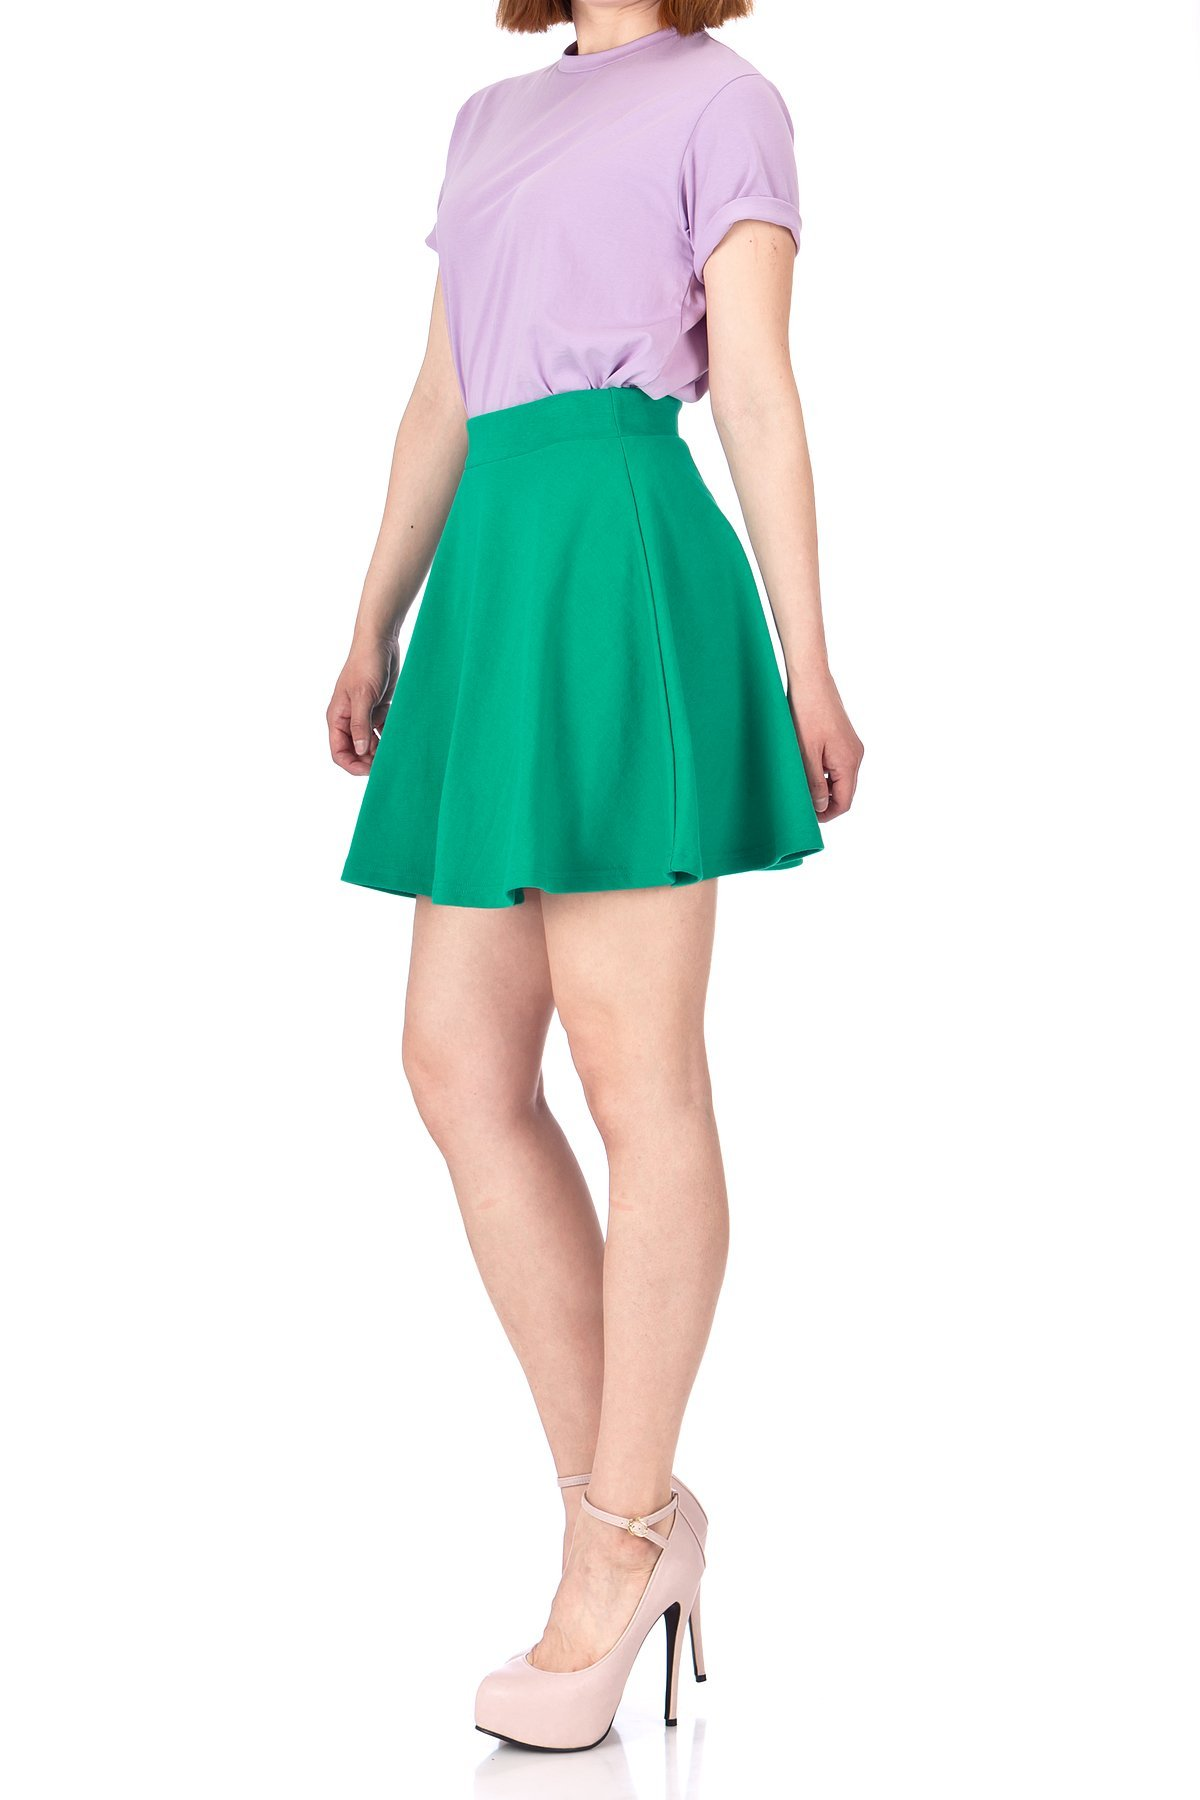 Basic Solid Stretchy Cotton High Waist A line Flared Skater Mini Skirt Green 02